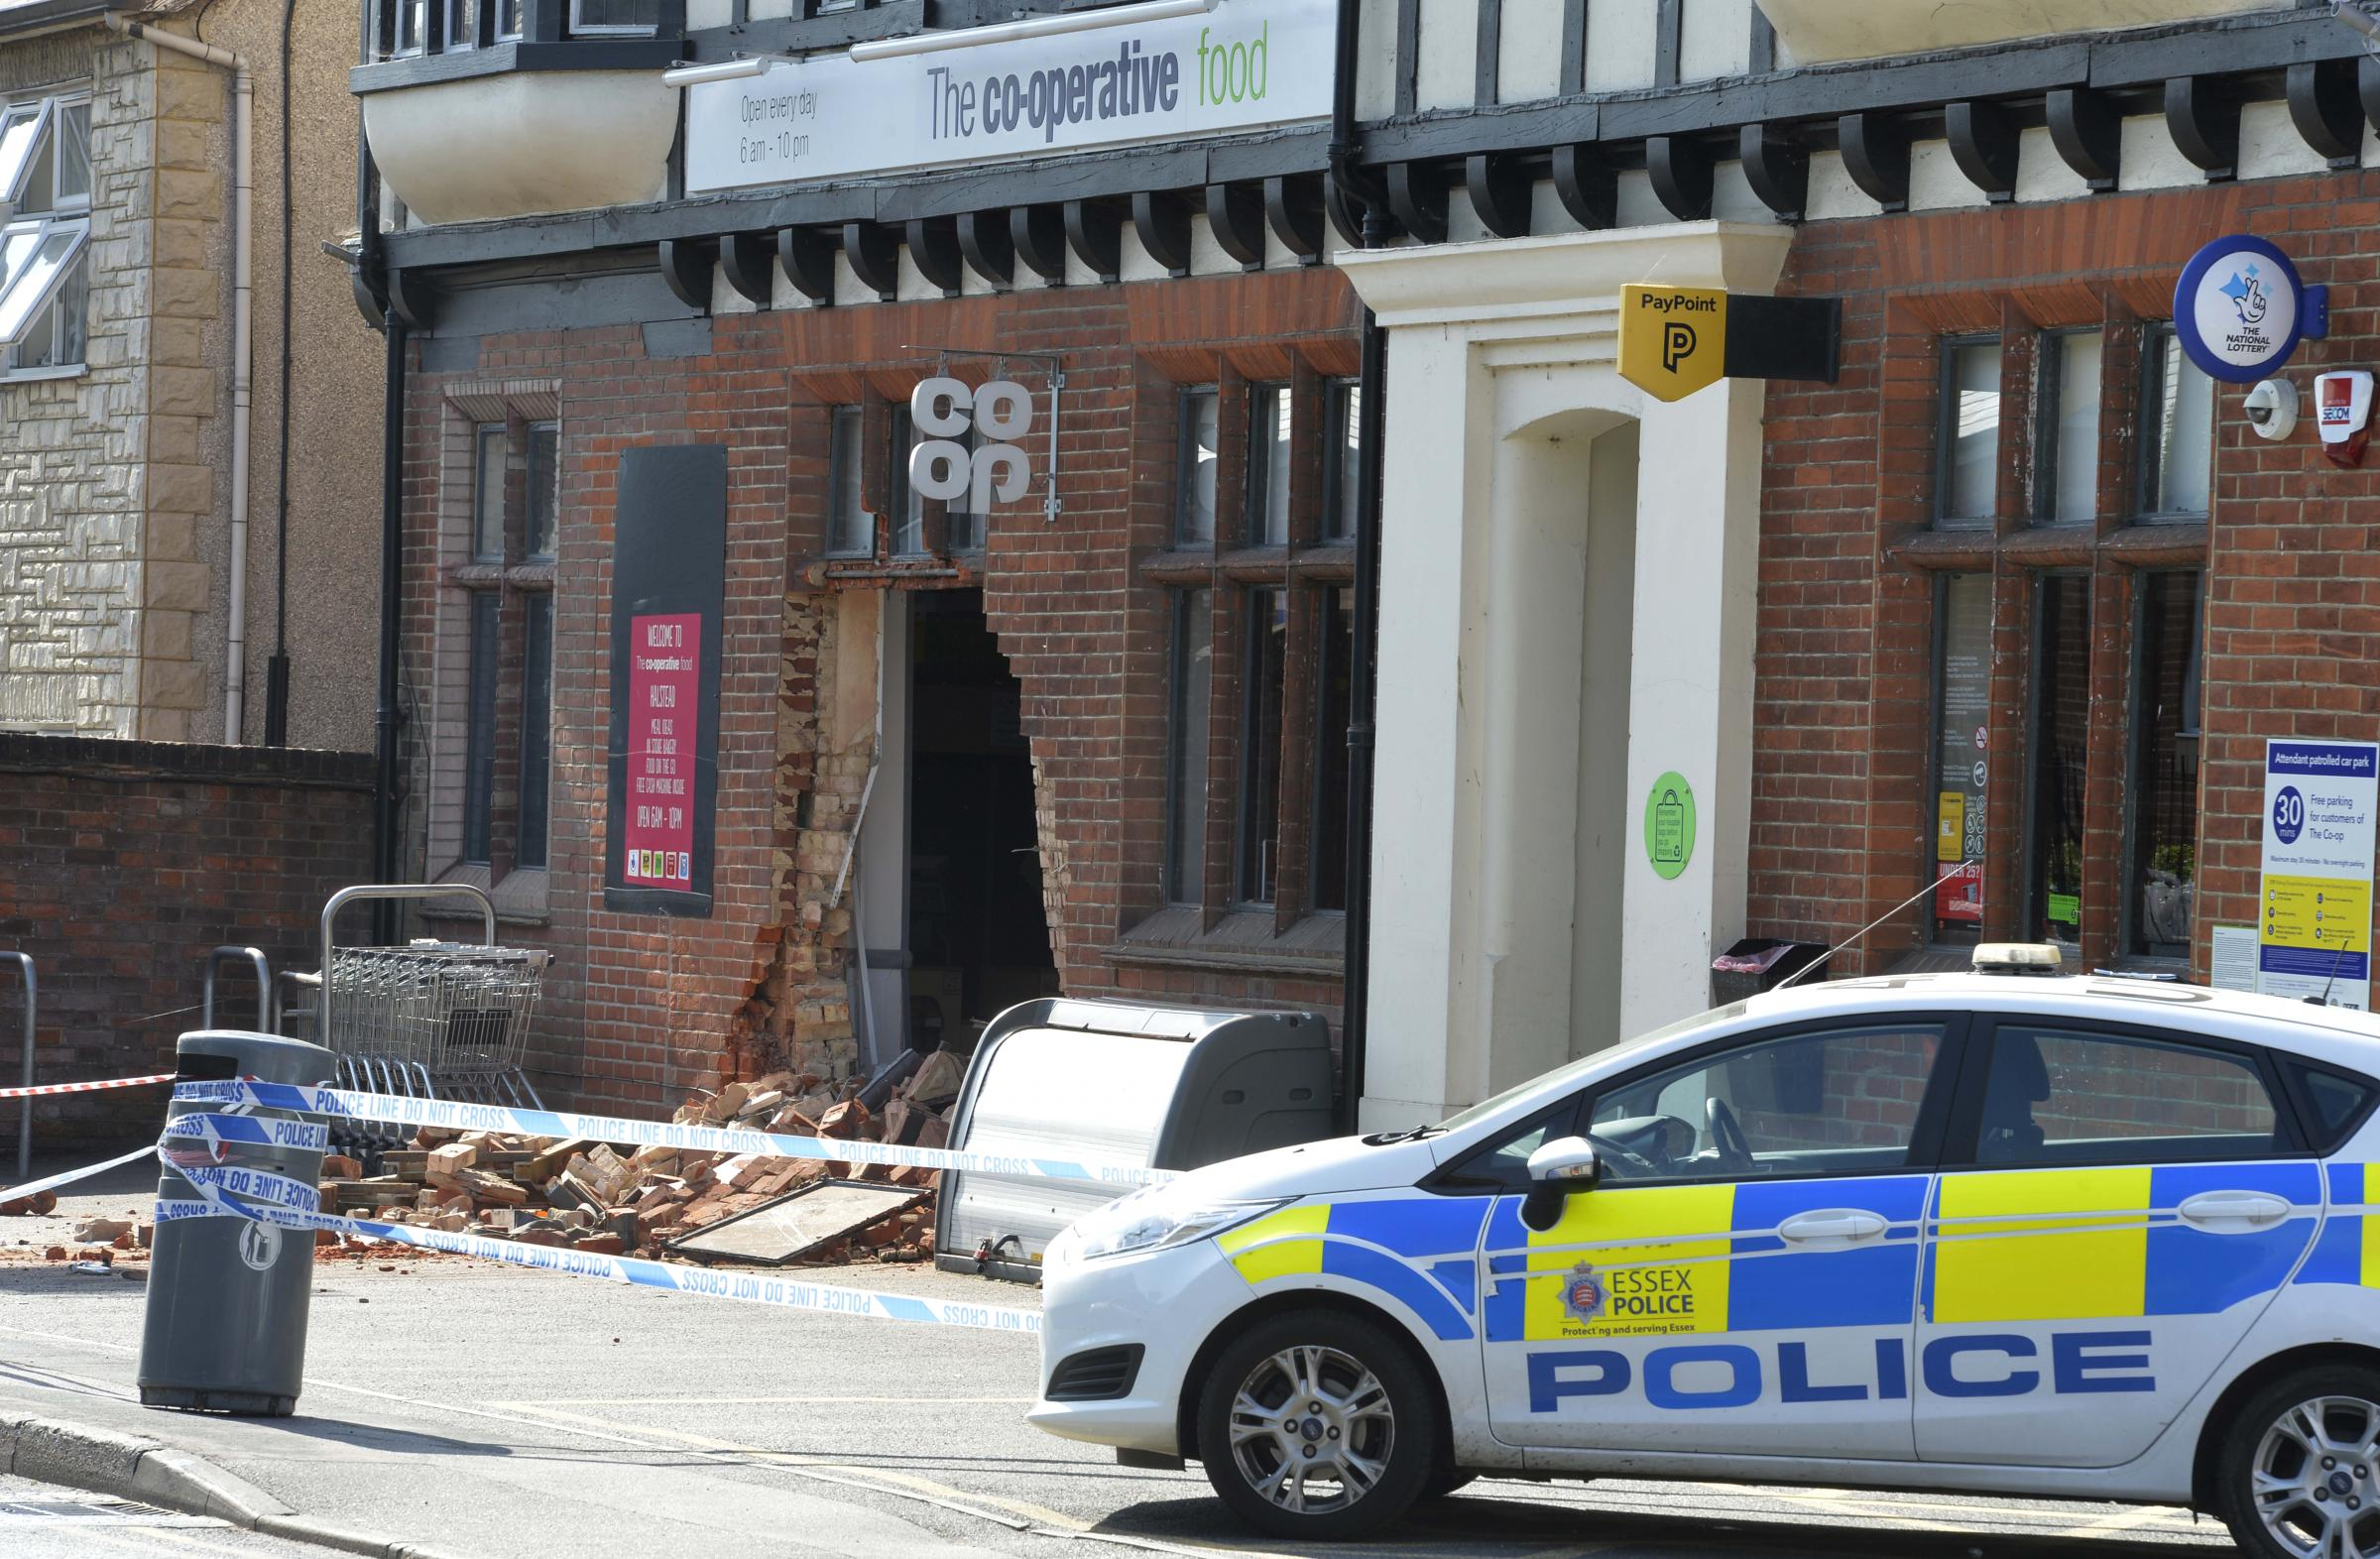 Co-ops to install steel bollards in bid to curb spate of ram raids